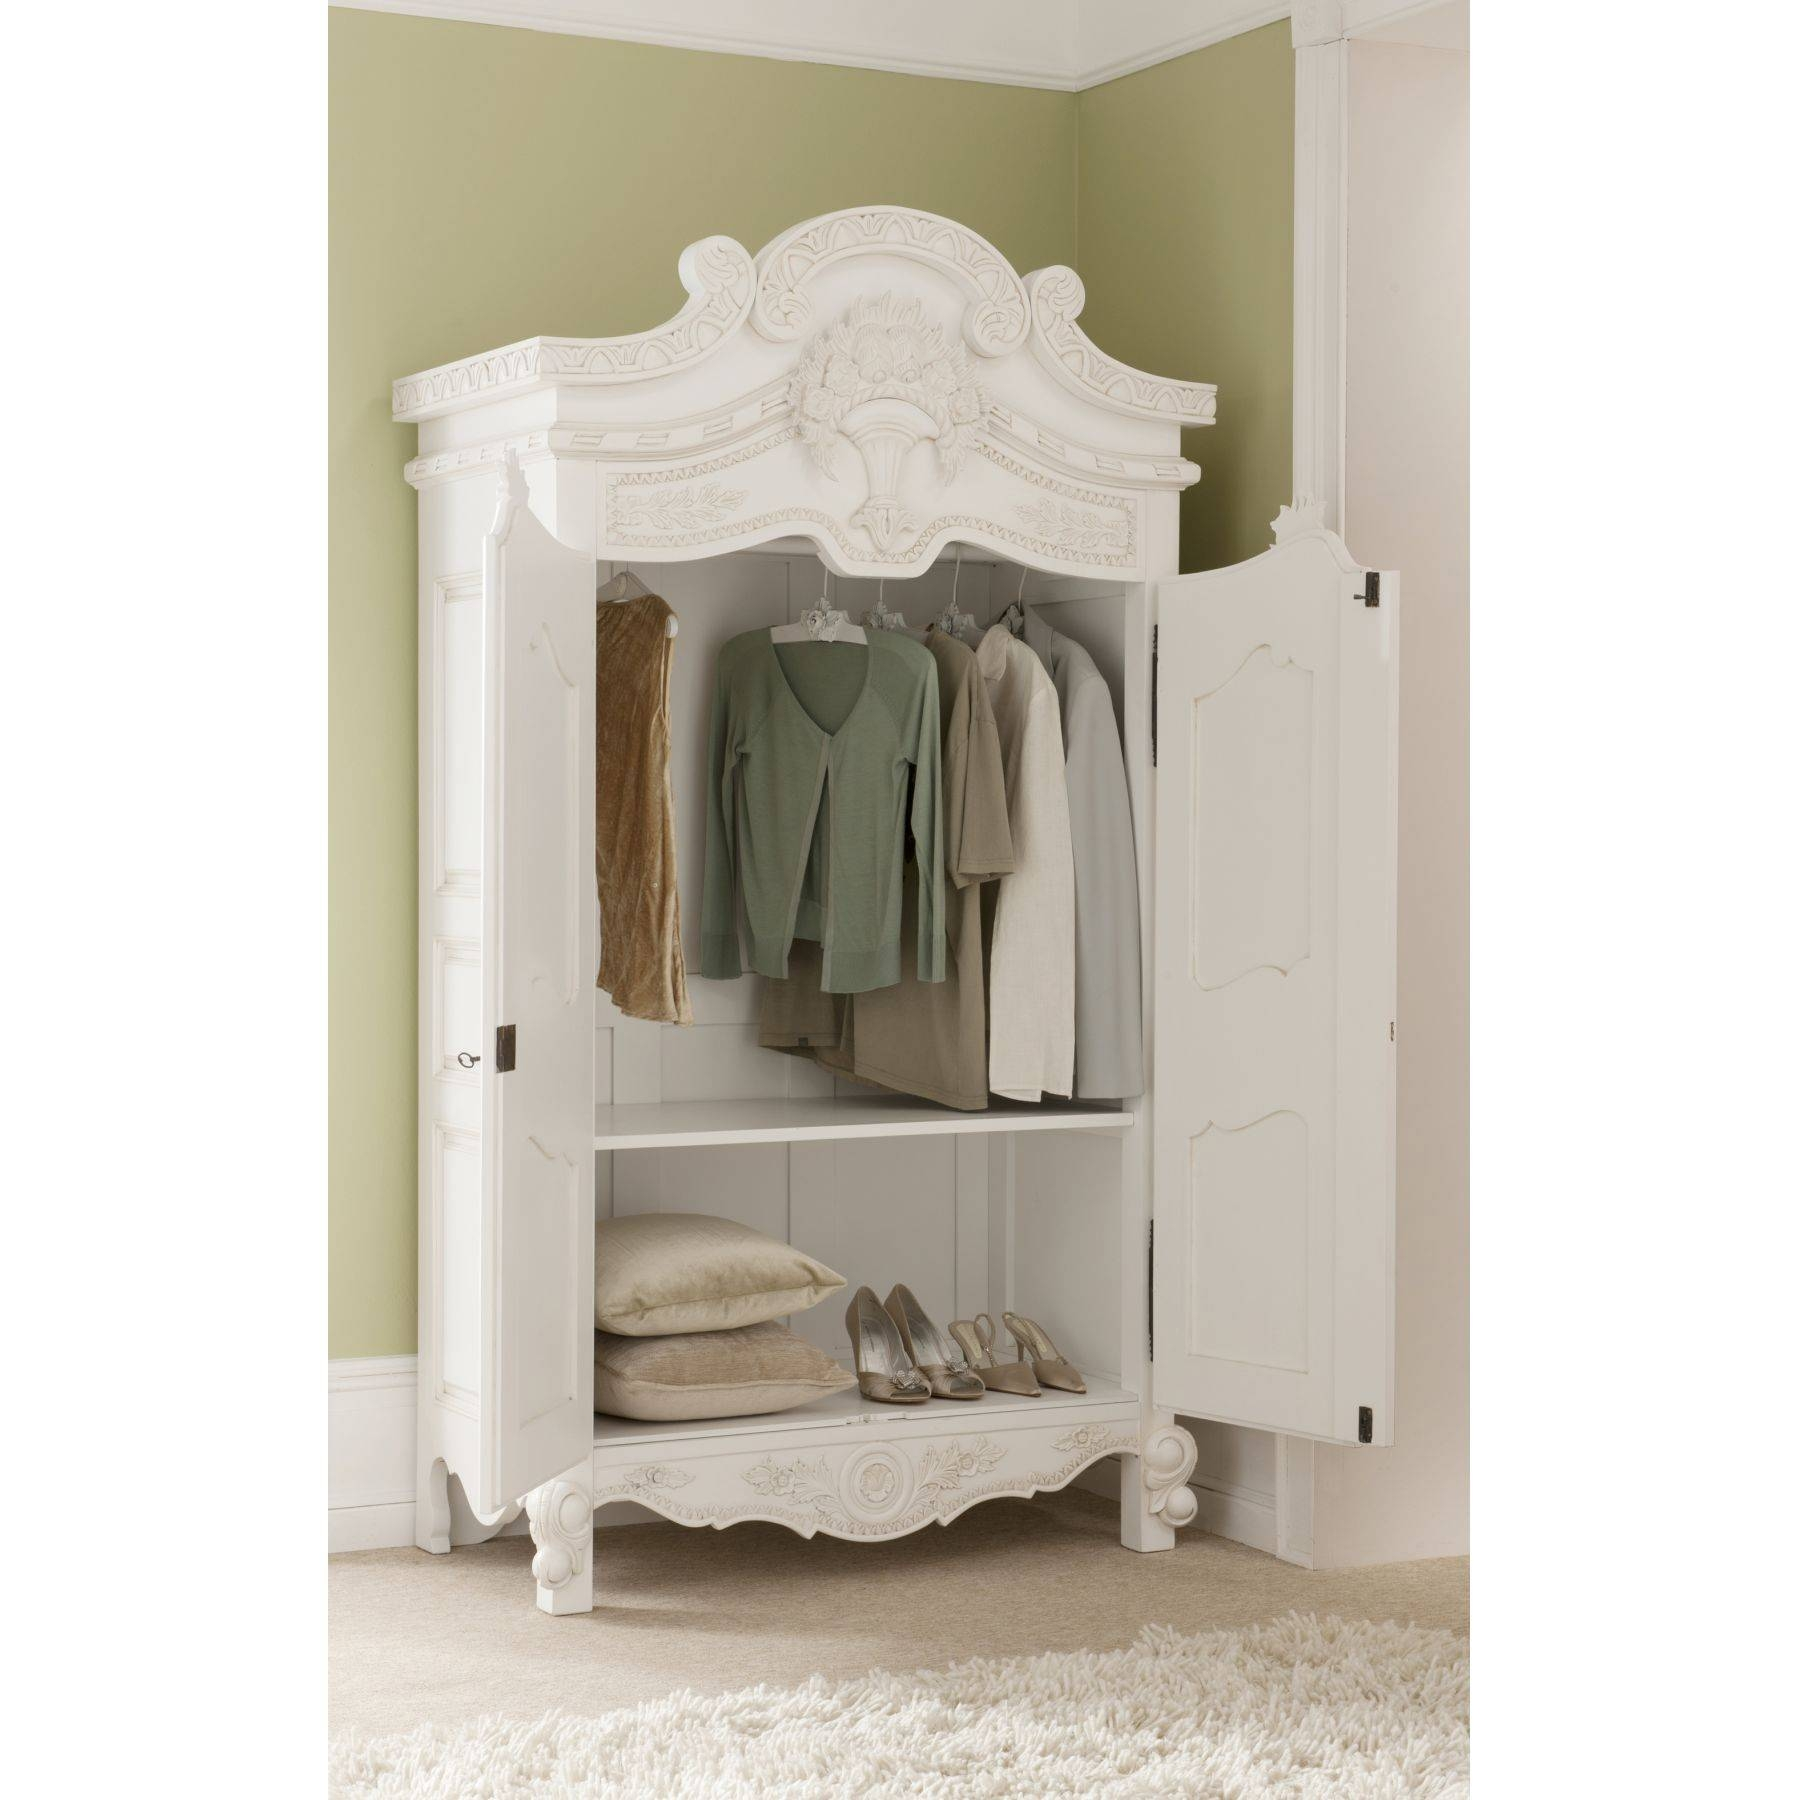 Rococo Antique French Wardrobe A Stunning Addition To Our Shabby pertaining to White French Style Wardrobes (Image 13 of 15)